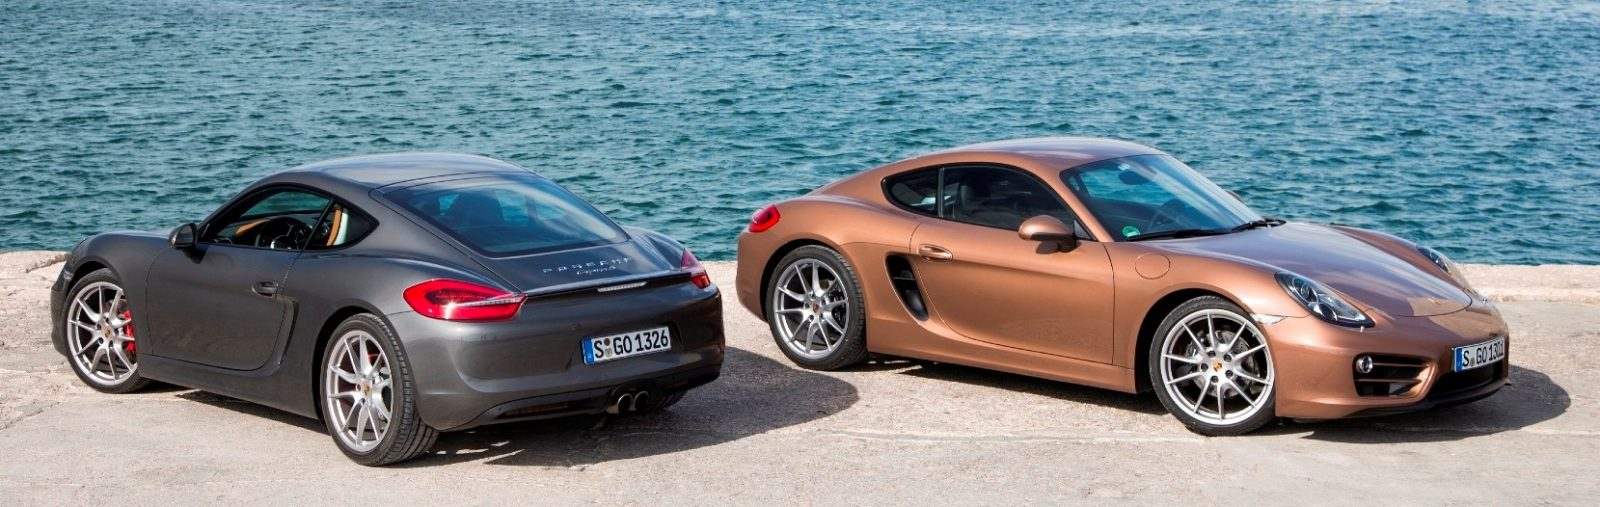 CarRevsDaily - Porsche CAYMAN Buyers Buide Photos 15